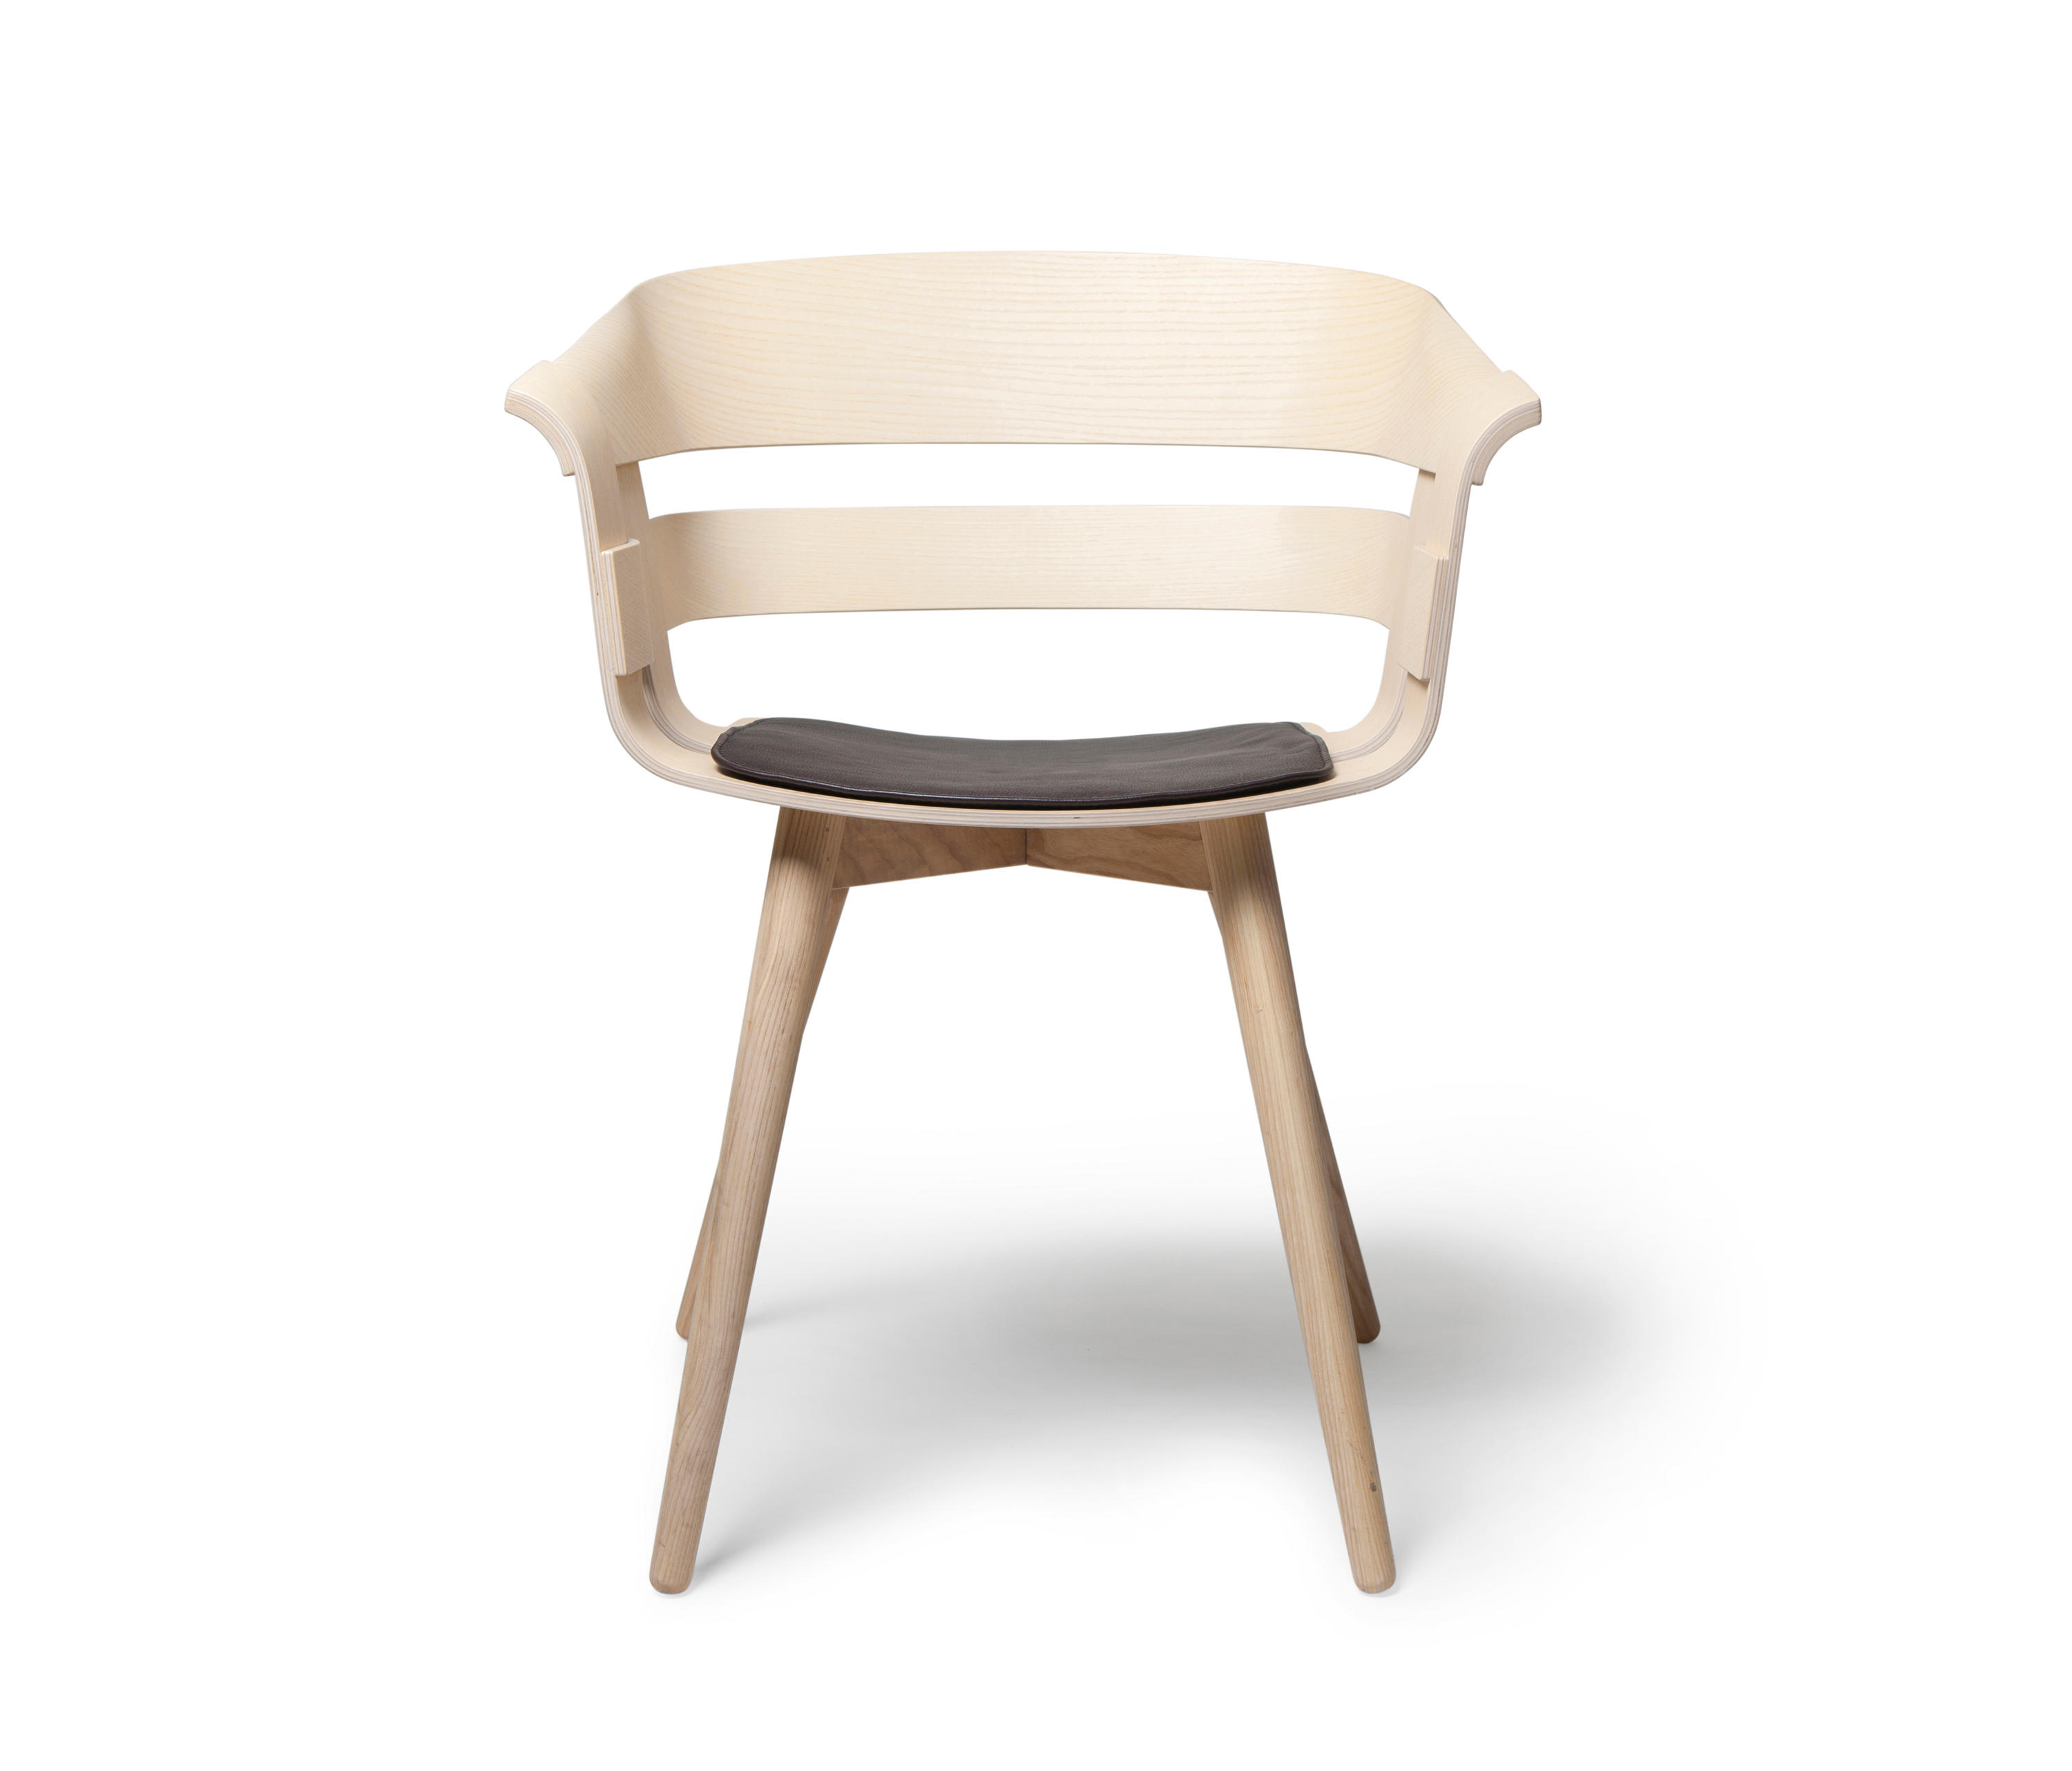 WICK CHAIR - Restaurant chairs from Design House Stockholm | Architonic